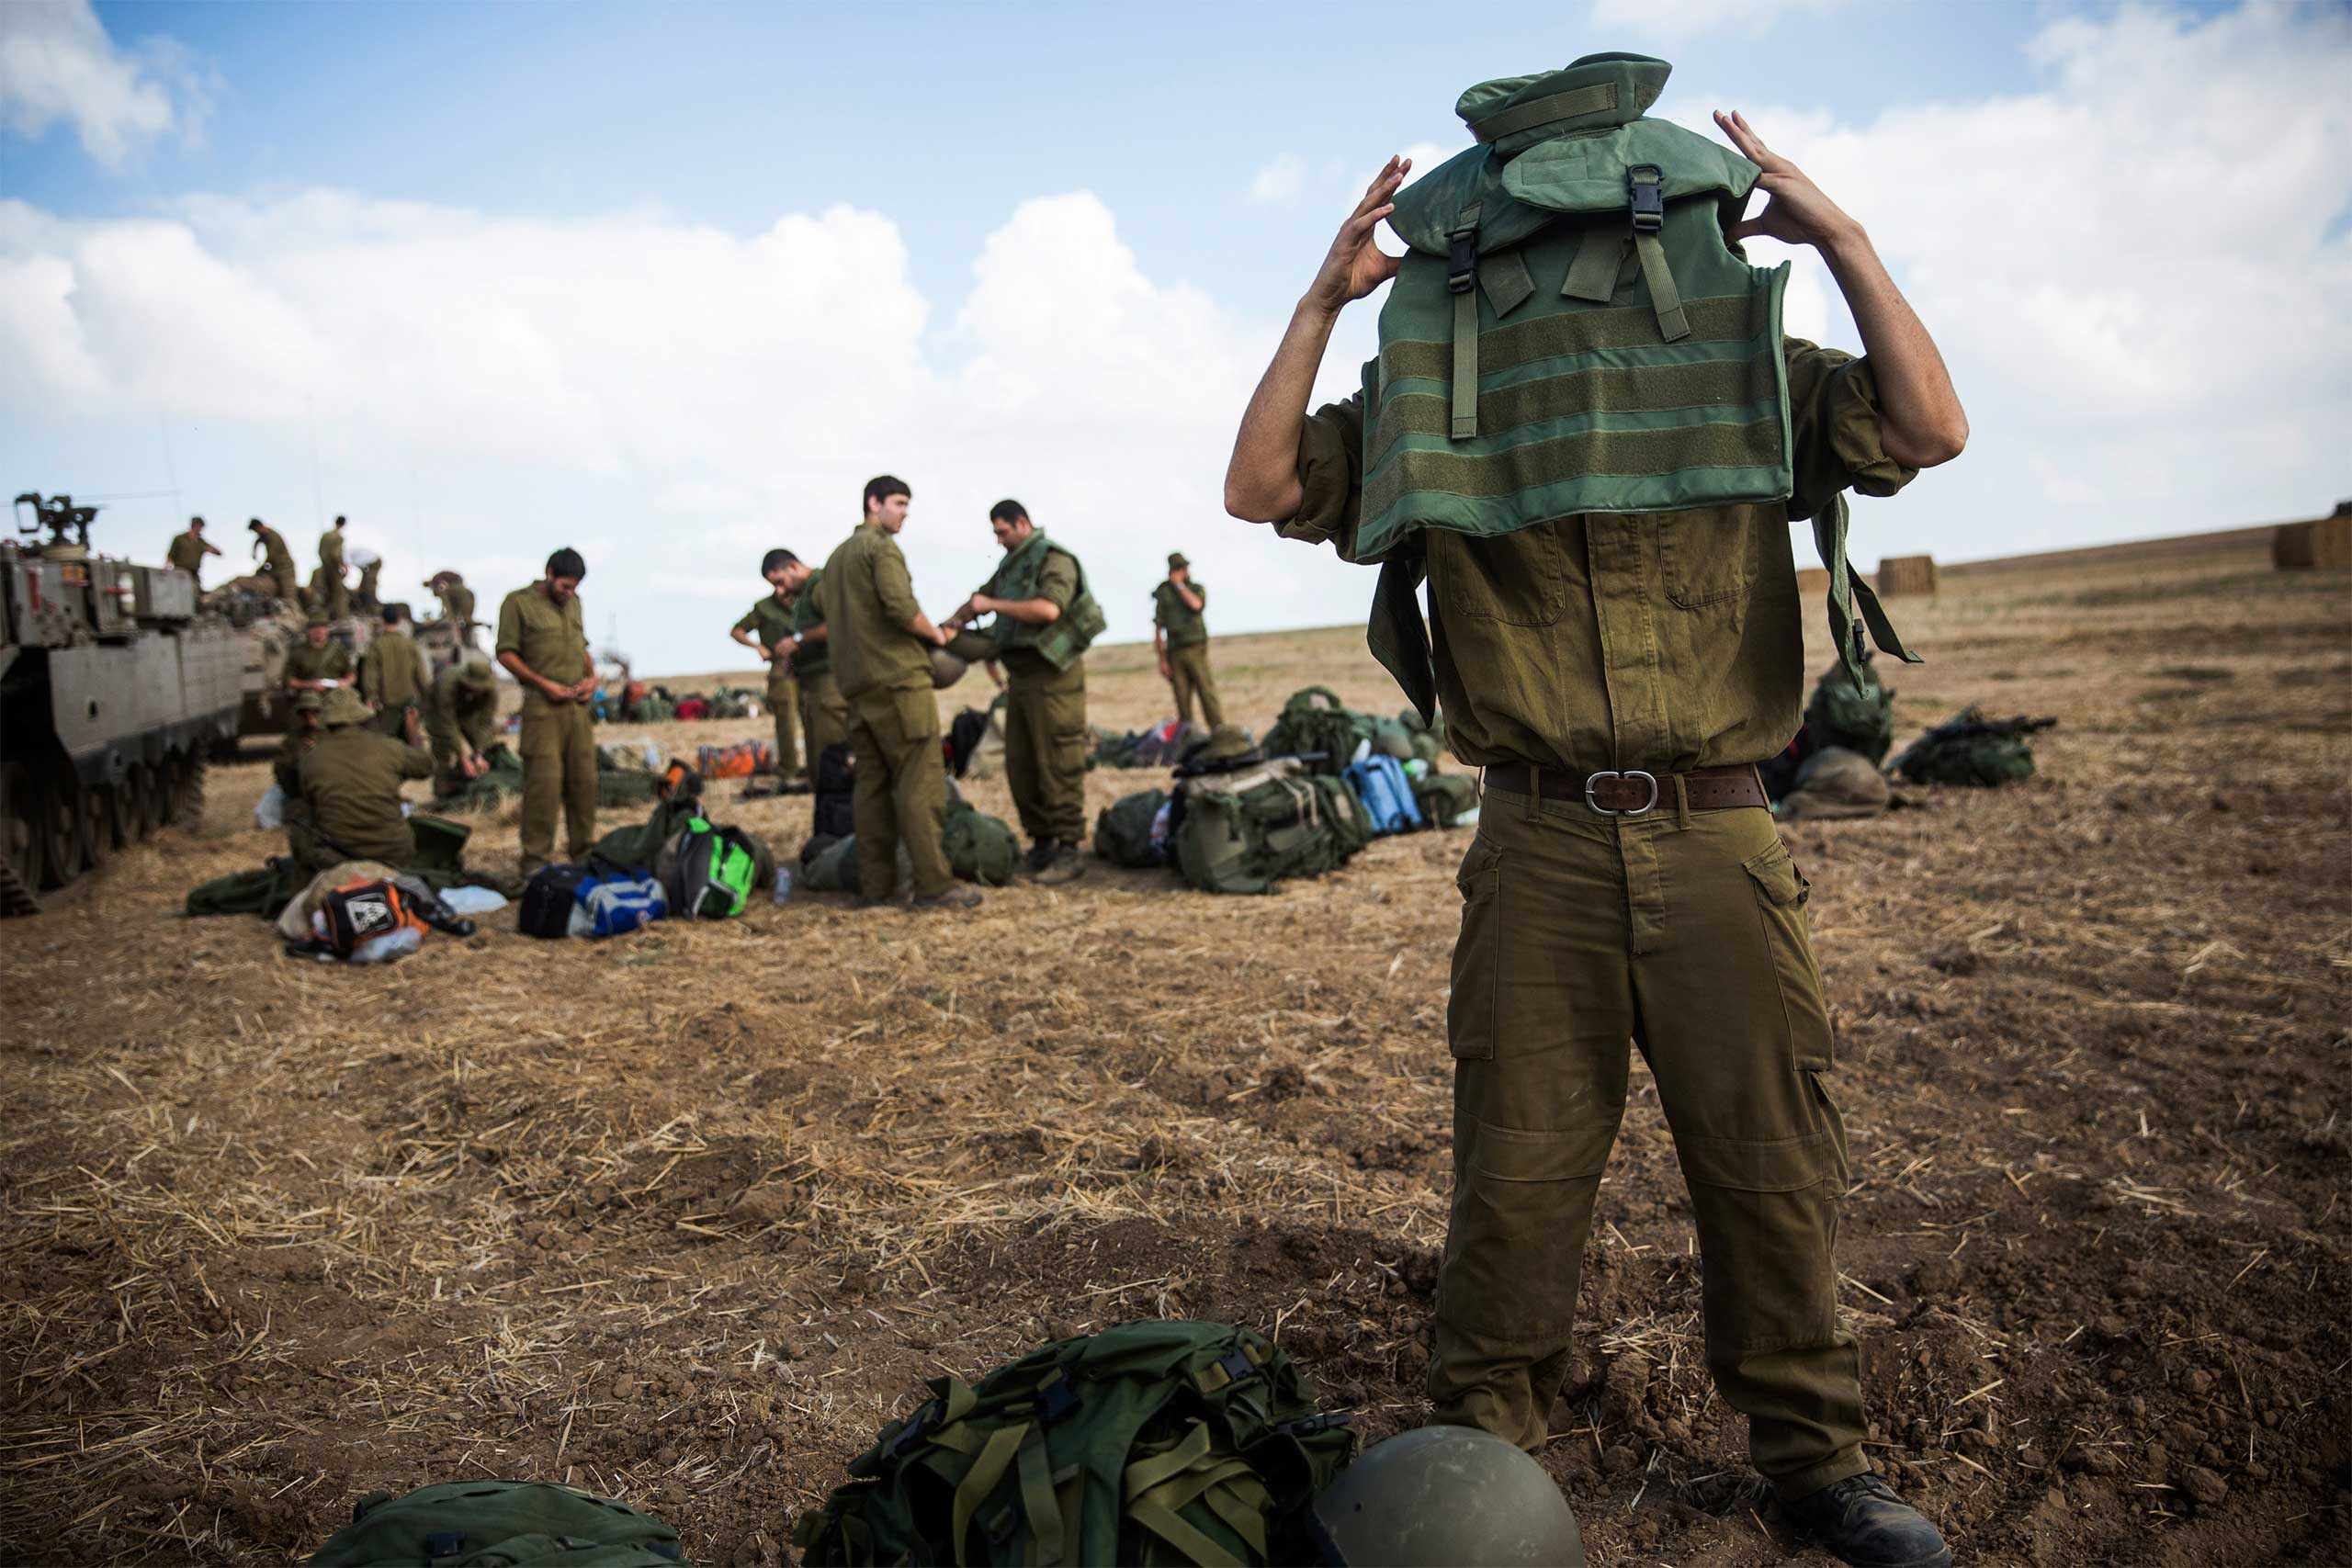 Israeli reservists troops arrive for duty close to the Israel-Gaza border near Sderot, Israel, on the morning of July 18, 2014.